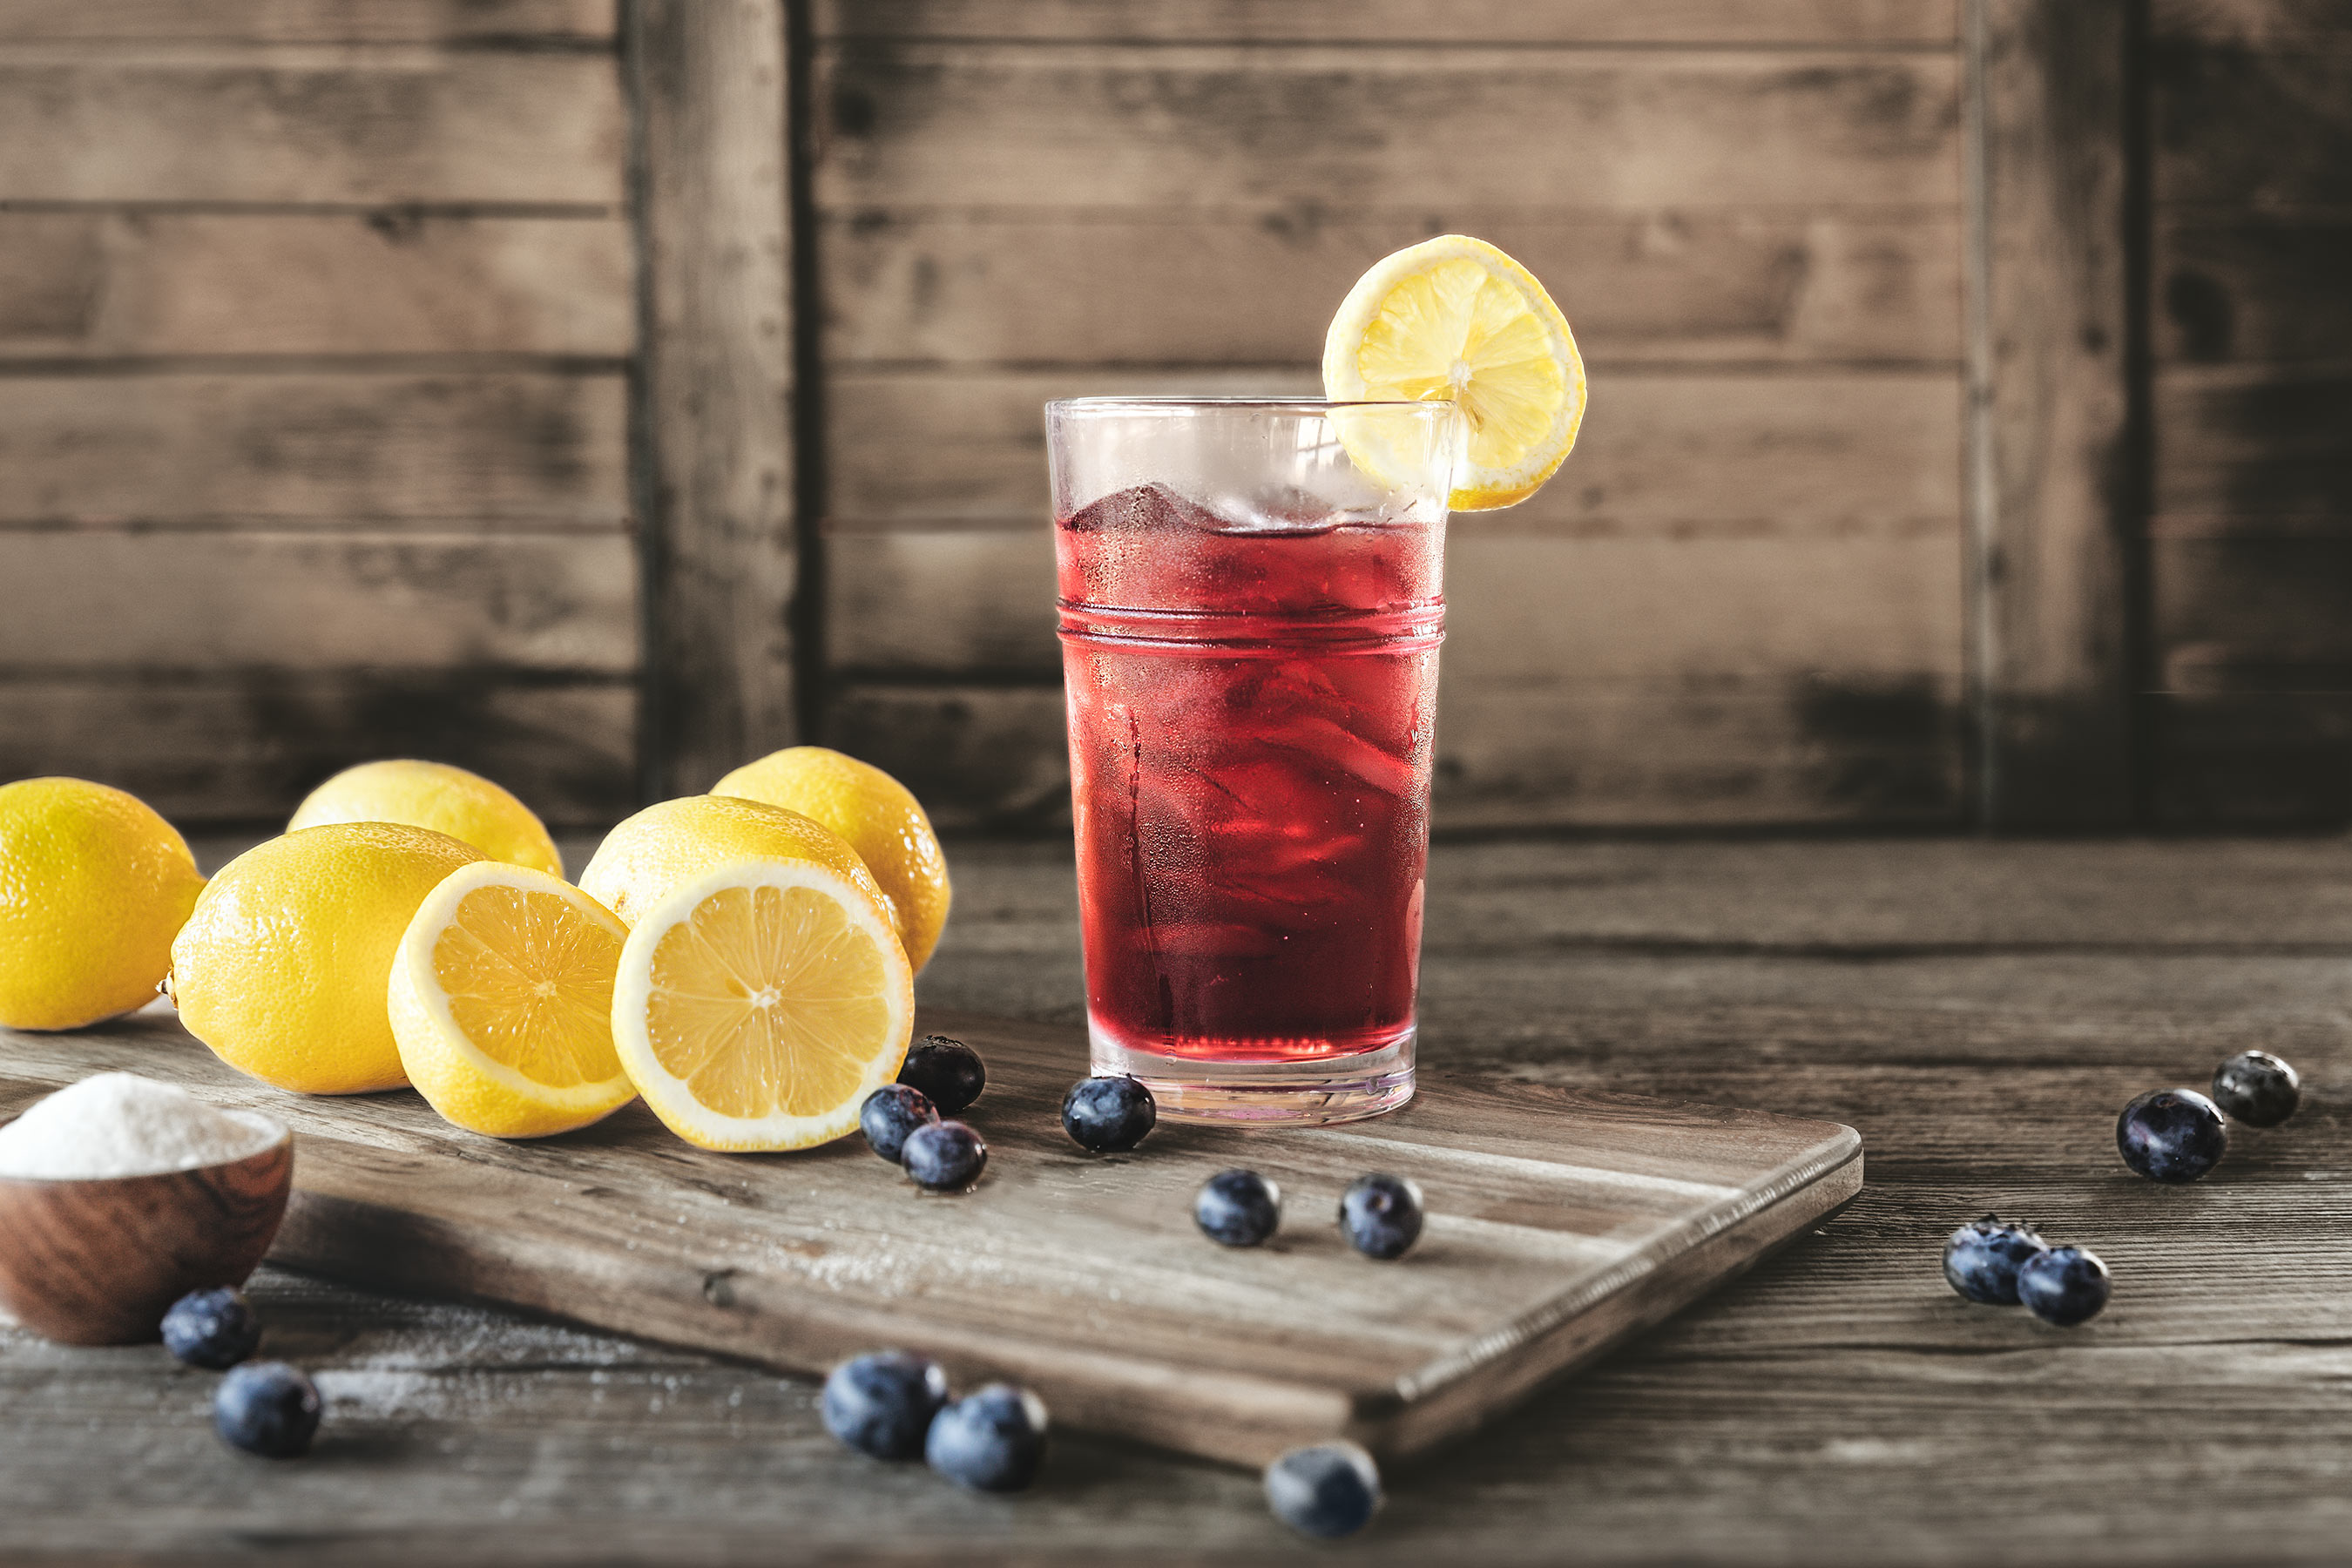 Blueberry Lemonade in a glass with ice in a rustic barn environment